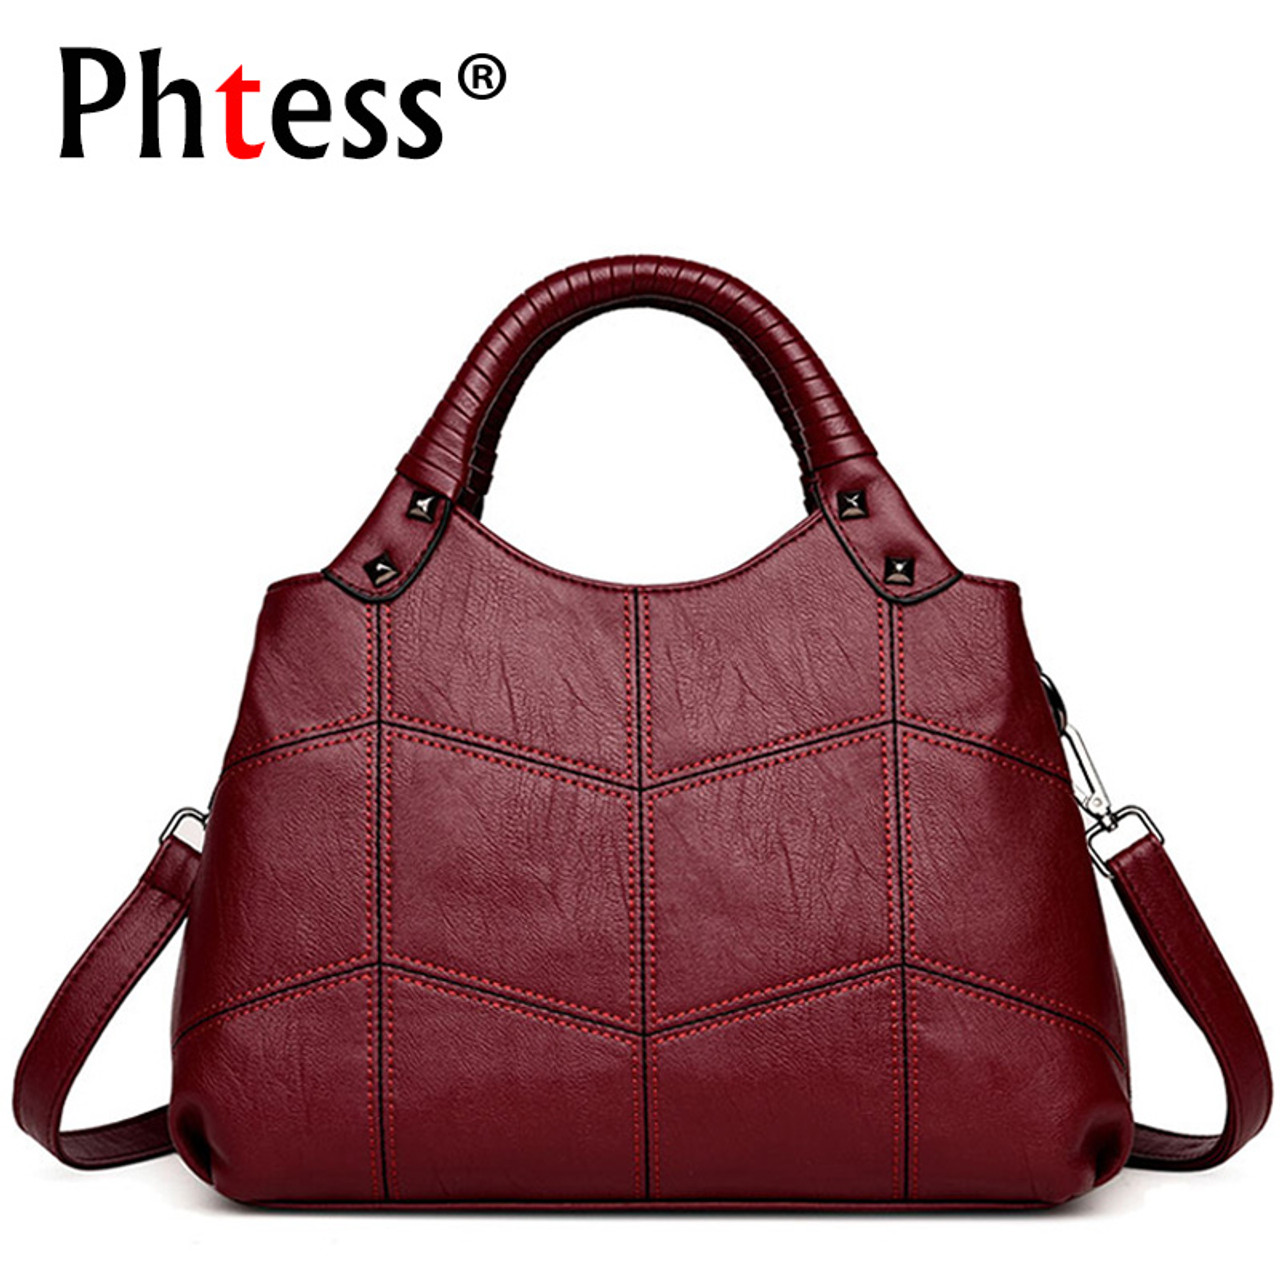 6f8ac215d6c6 ... 2018 Women Leather Handbags Vintage Casual Tote Bags Female Designer  Brand Crossbody Shoulder Bag Ladies Hand ...